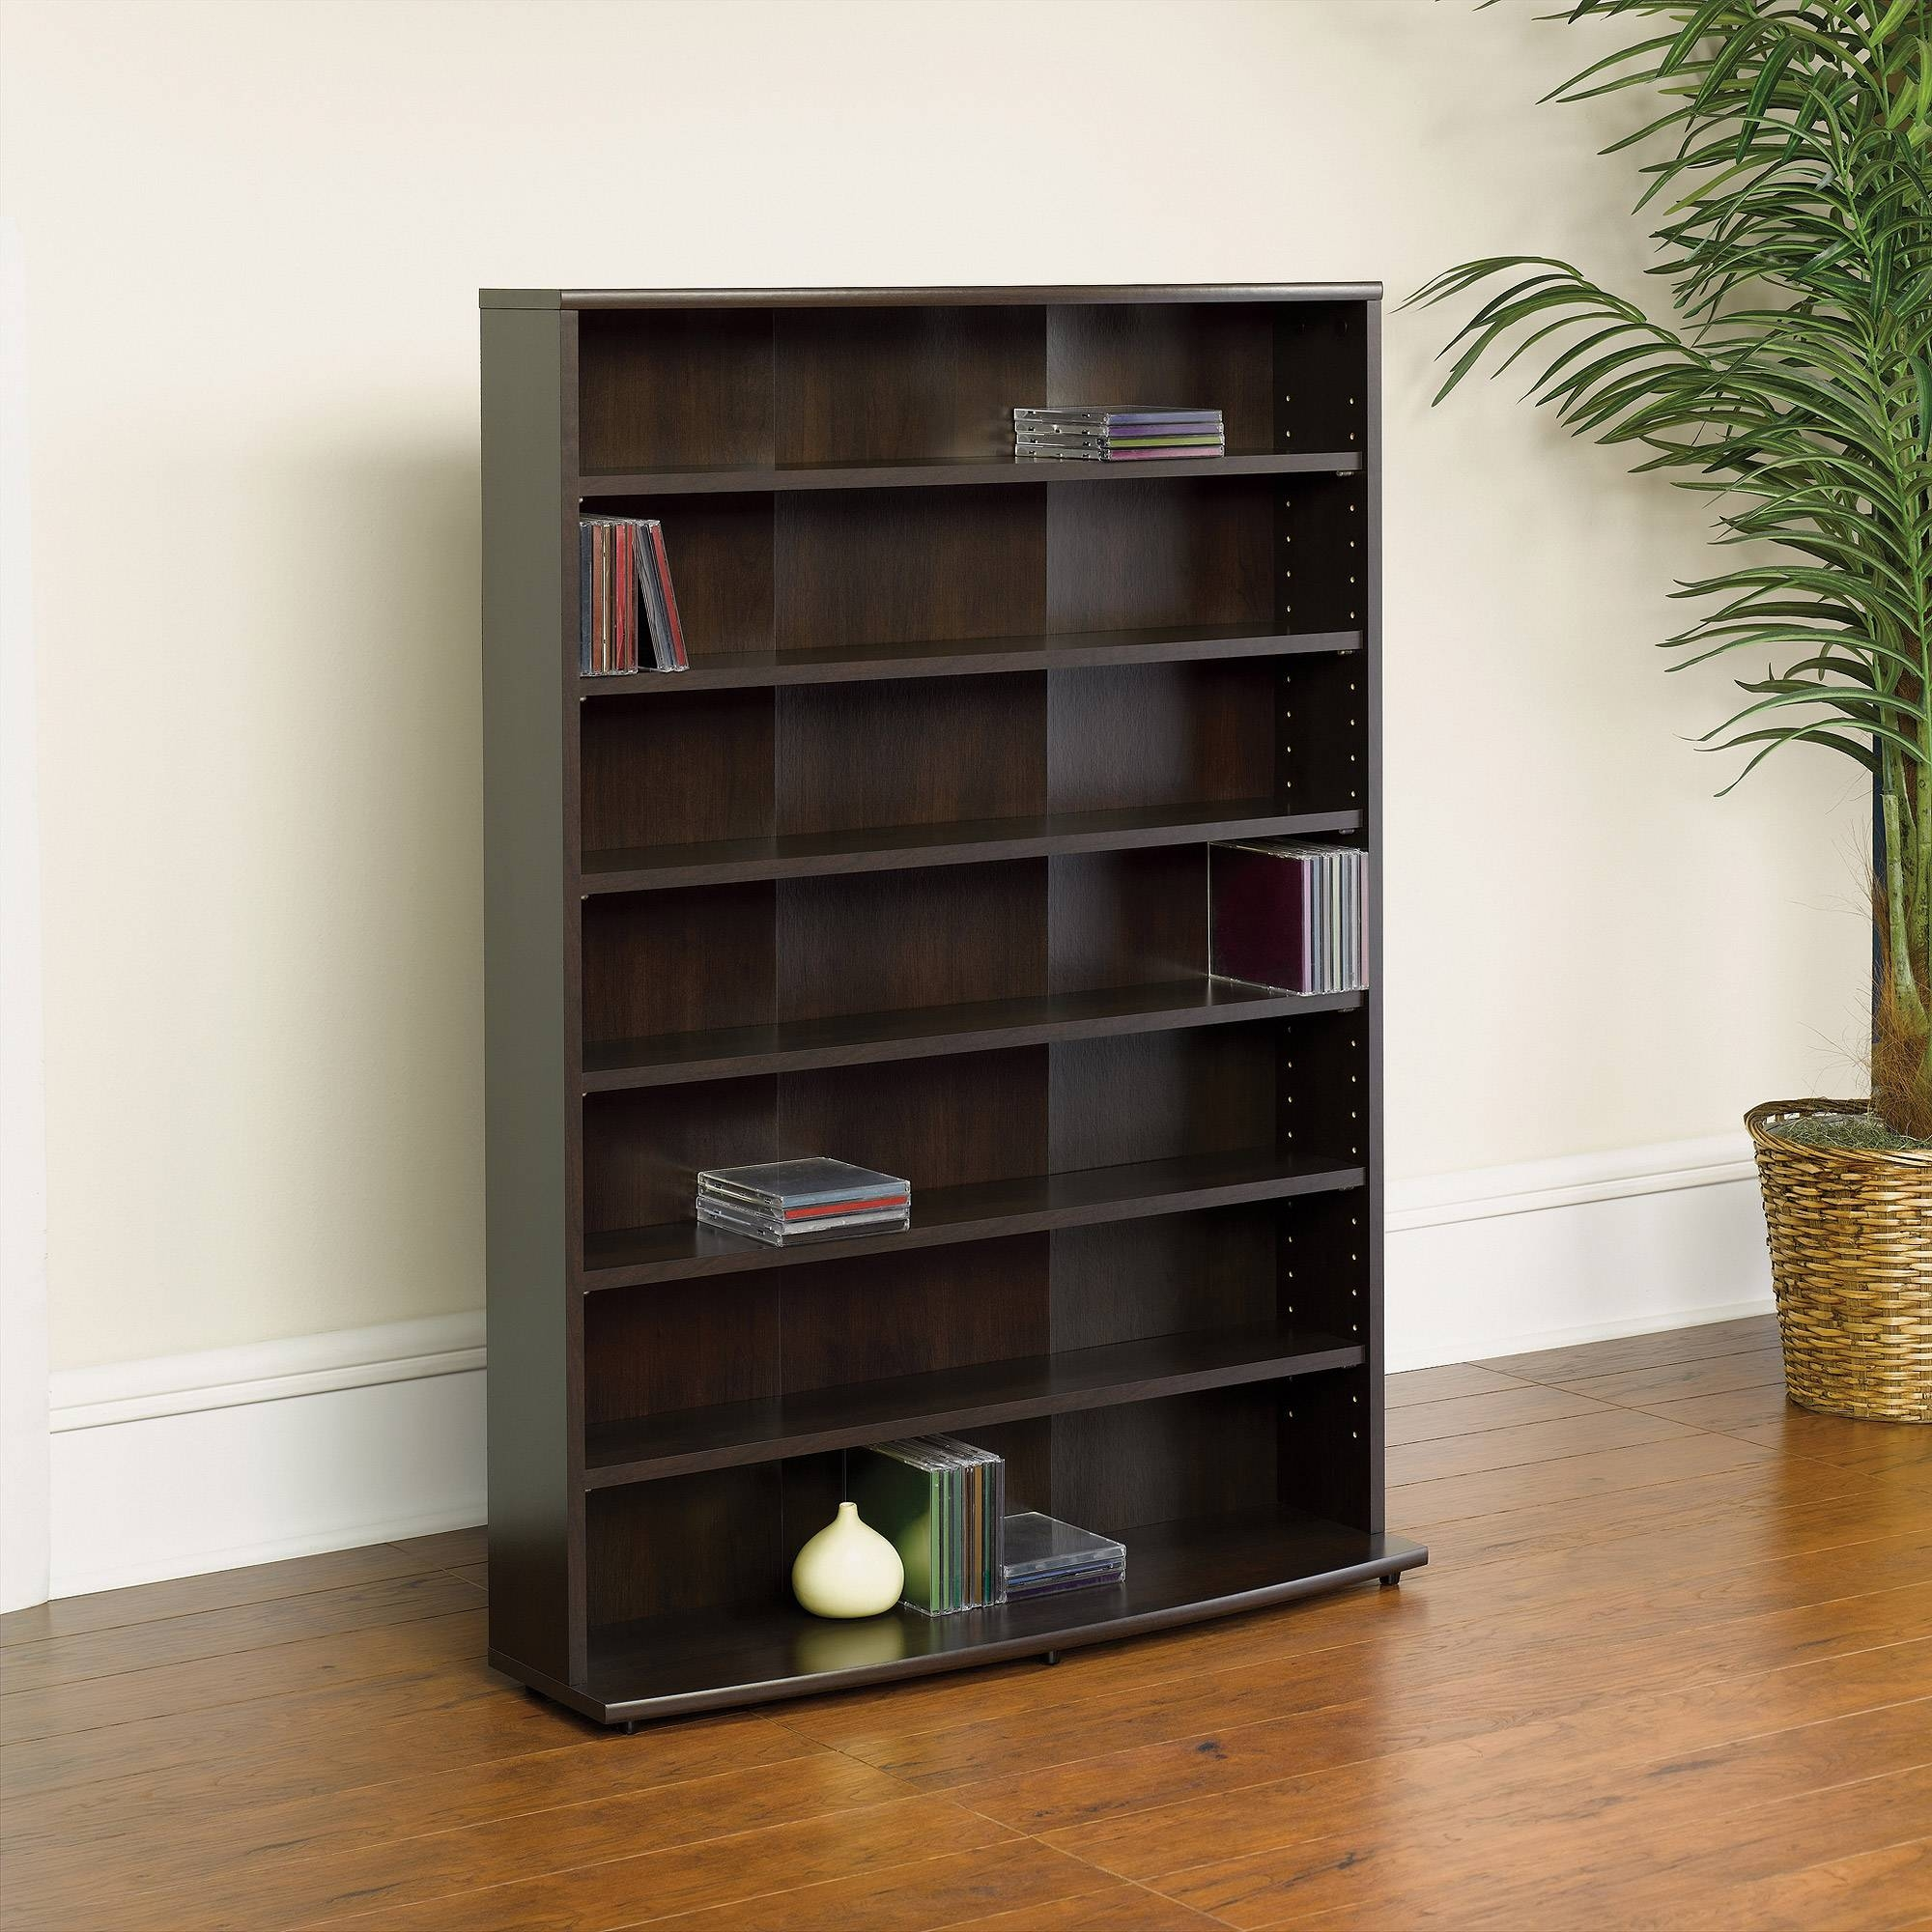 Sauder O'sullivan Multimedia Storage Tower, Cinnamon Cherry with Cd Storage Coffee Tables (Image 20 of 30)